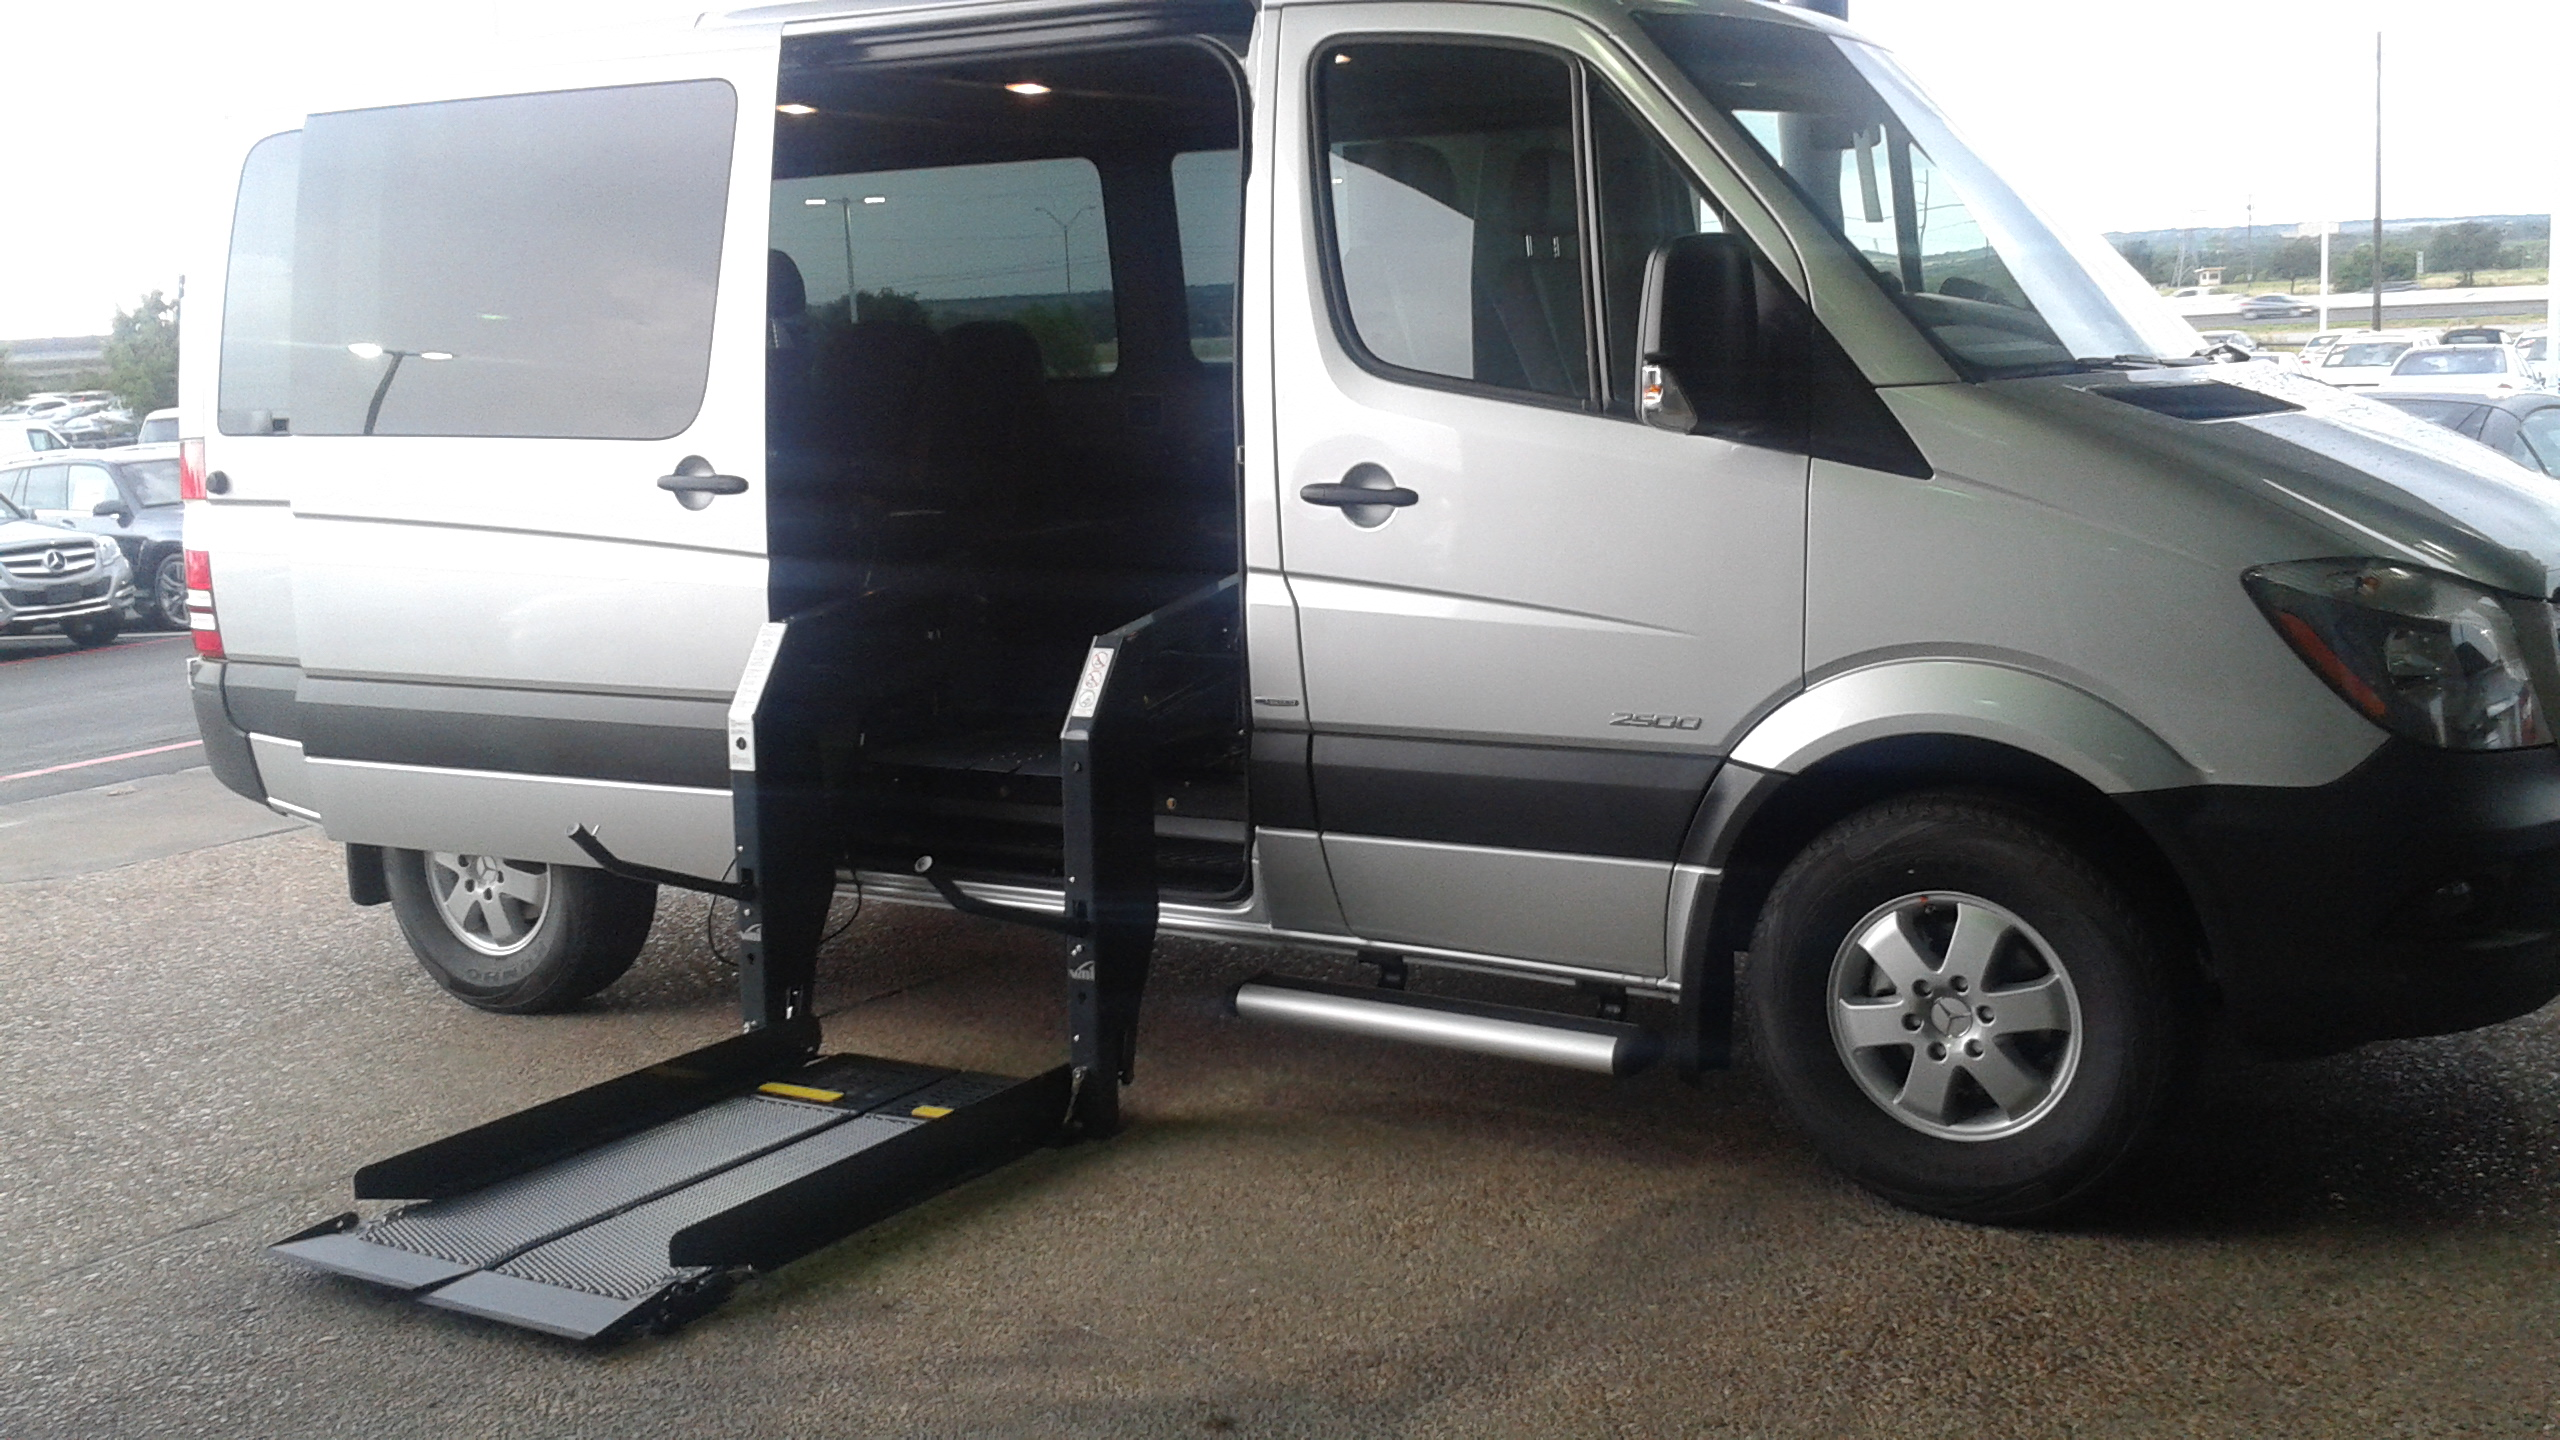 Handicap mercedes sprinter for sale for Mercedes benz sprinter conversion van for sale